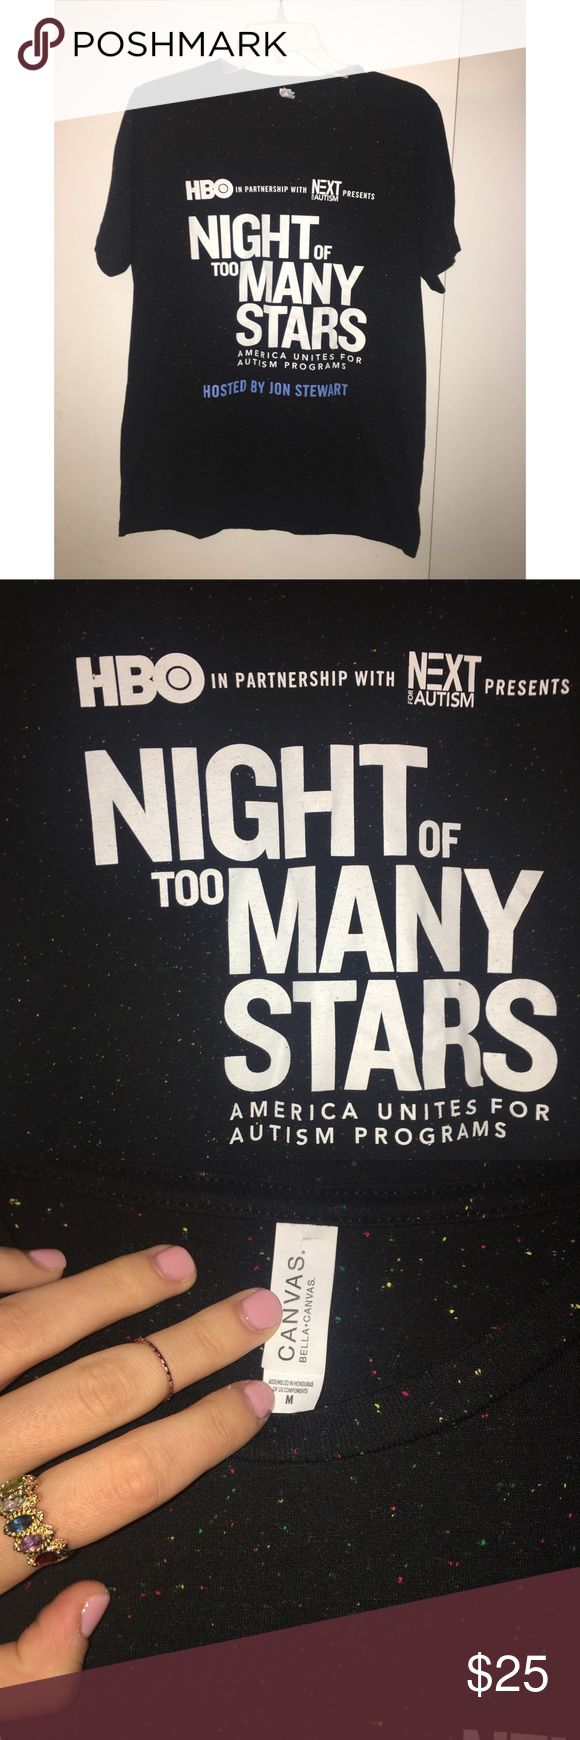 """Official tee from HBO Event hosted by Jon Stewart! Rare and never worn!! Black t-shirt with multi-color speckles that look like """"stars"""" 🌟⭐️⭐️ If you have HBO, this LIVE benefit raised money for Autism awareness and programs that help the families affected. You won't snag this unique official tee from anywhere else! Awesome cause and looks cool! Size medium. Tops Tees - Short Sleeve"""